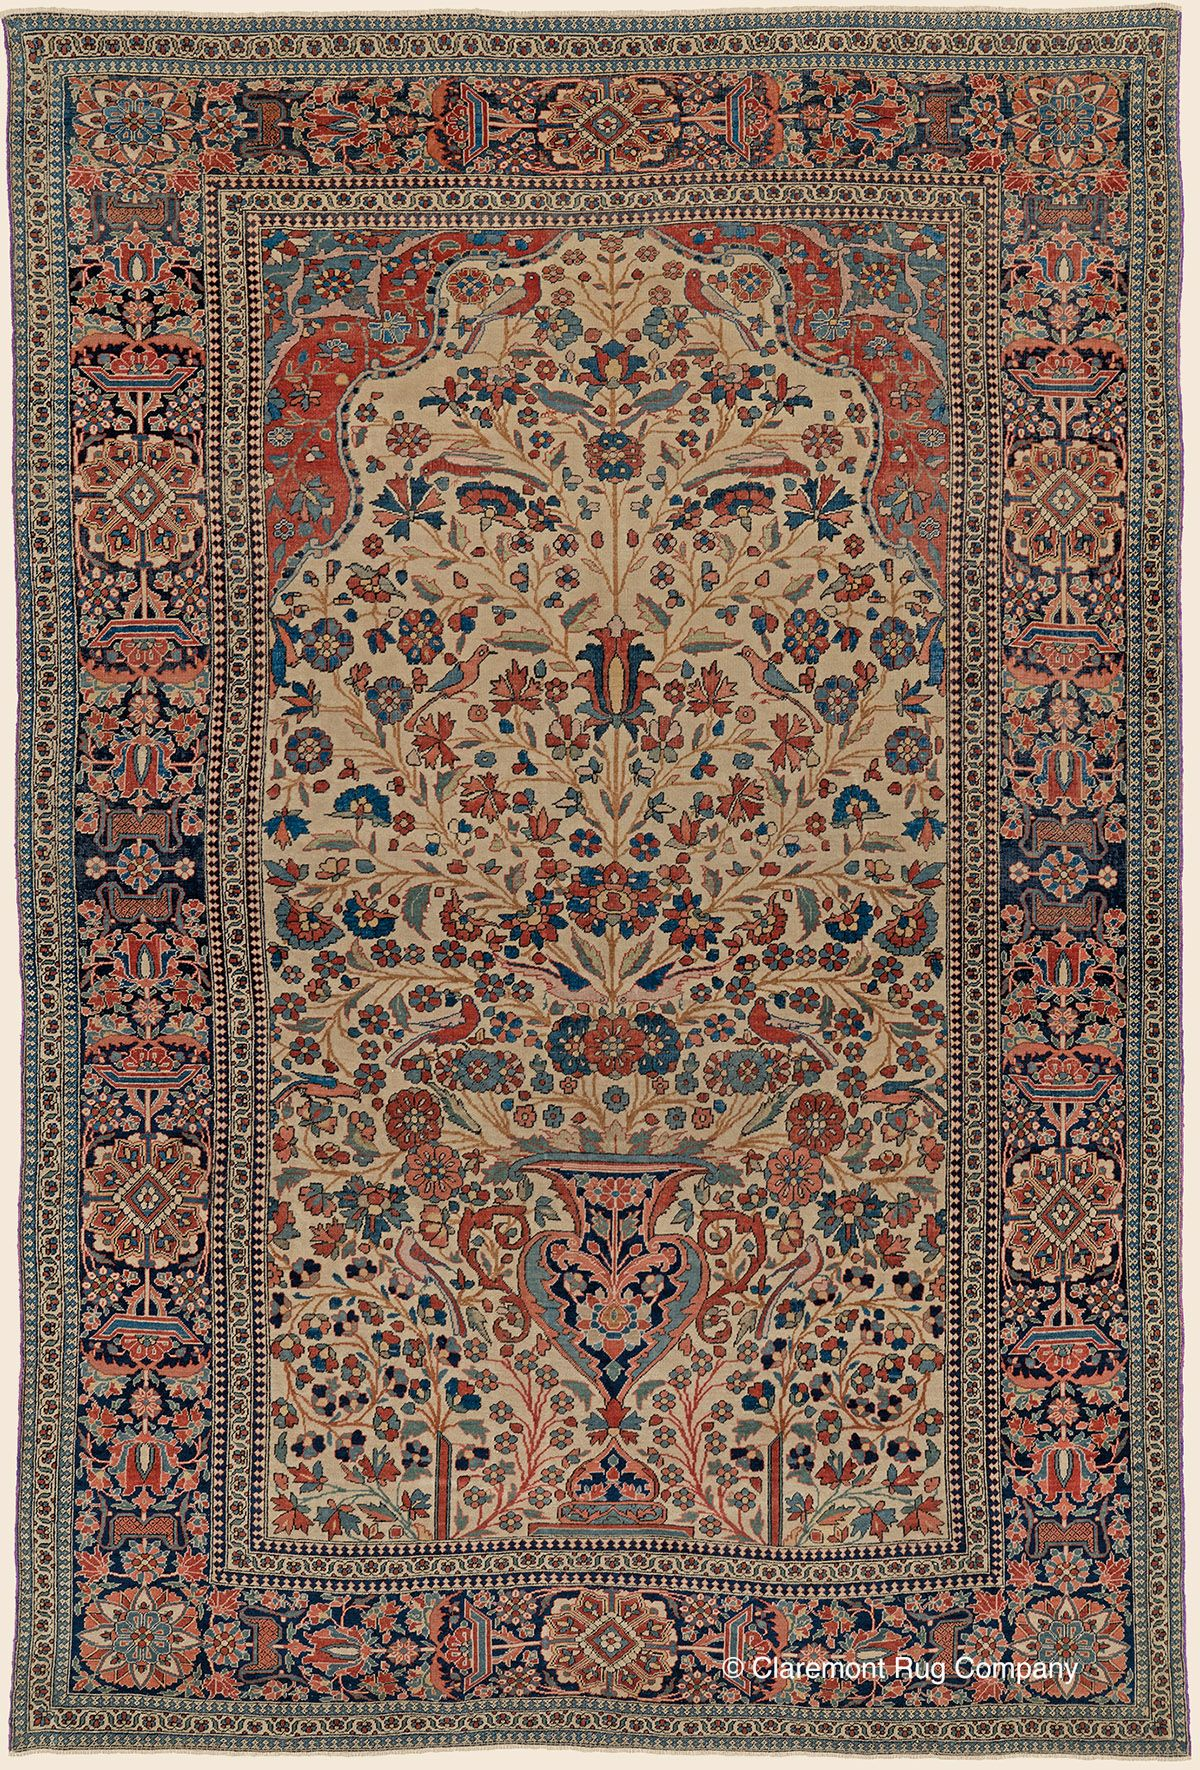 Antique 19th Century Central Persian High Collectible Oriental Art Level Mohtasham Kashan Vase Rug Antique Rug Claremont Rug Company Persian Rug Designs Carpet Handmade Antique Oriental Rugs